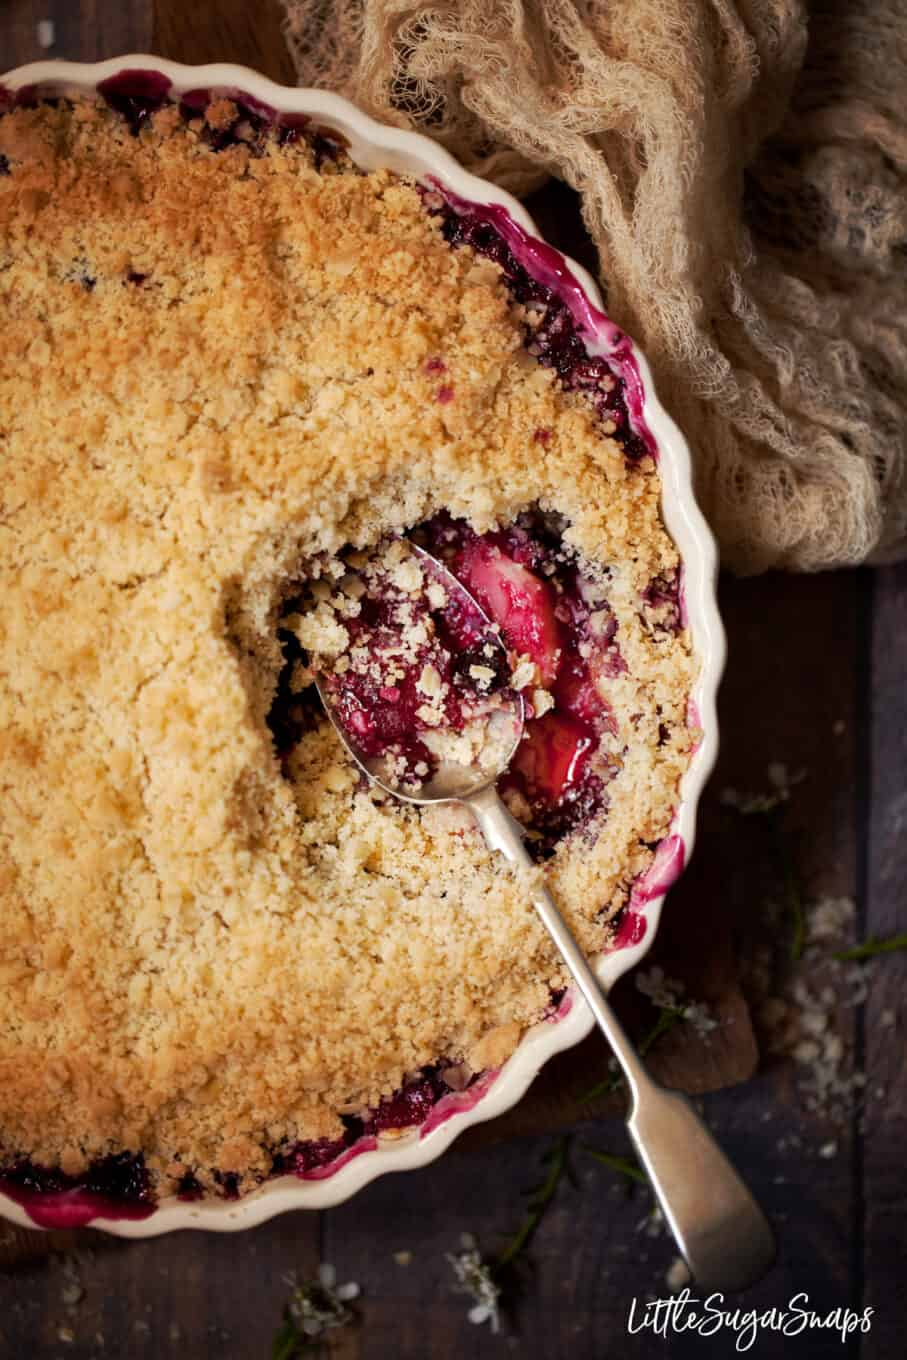 A serving dish filled with apple and blackcurrant crumble.